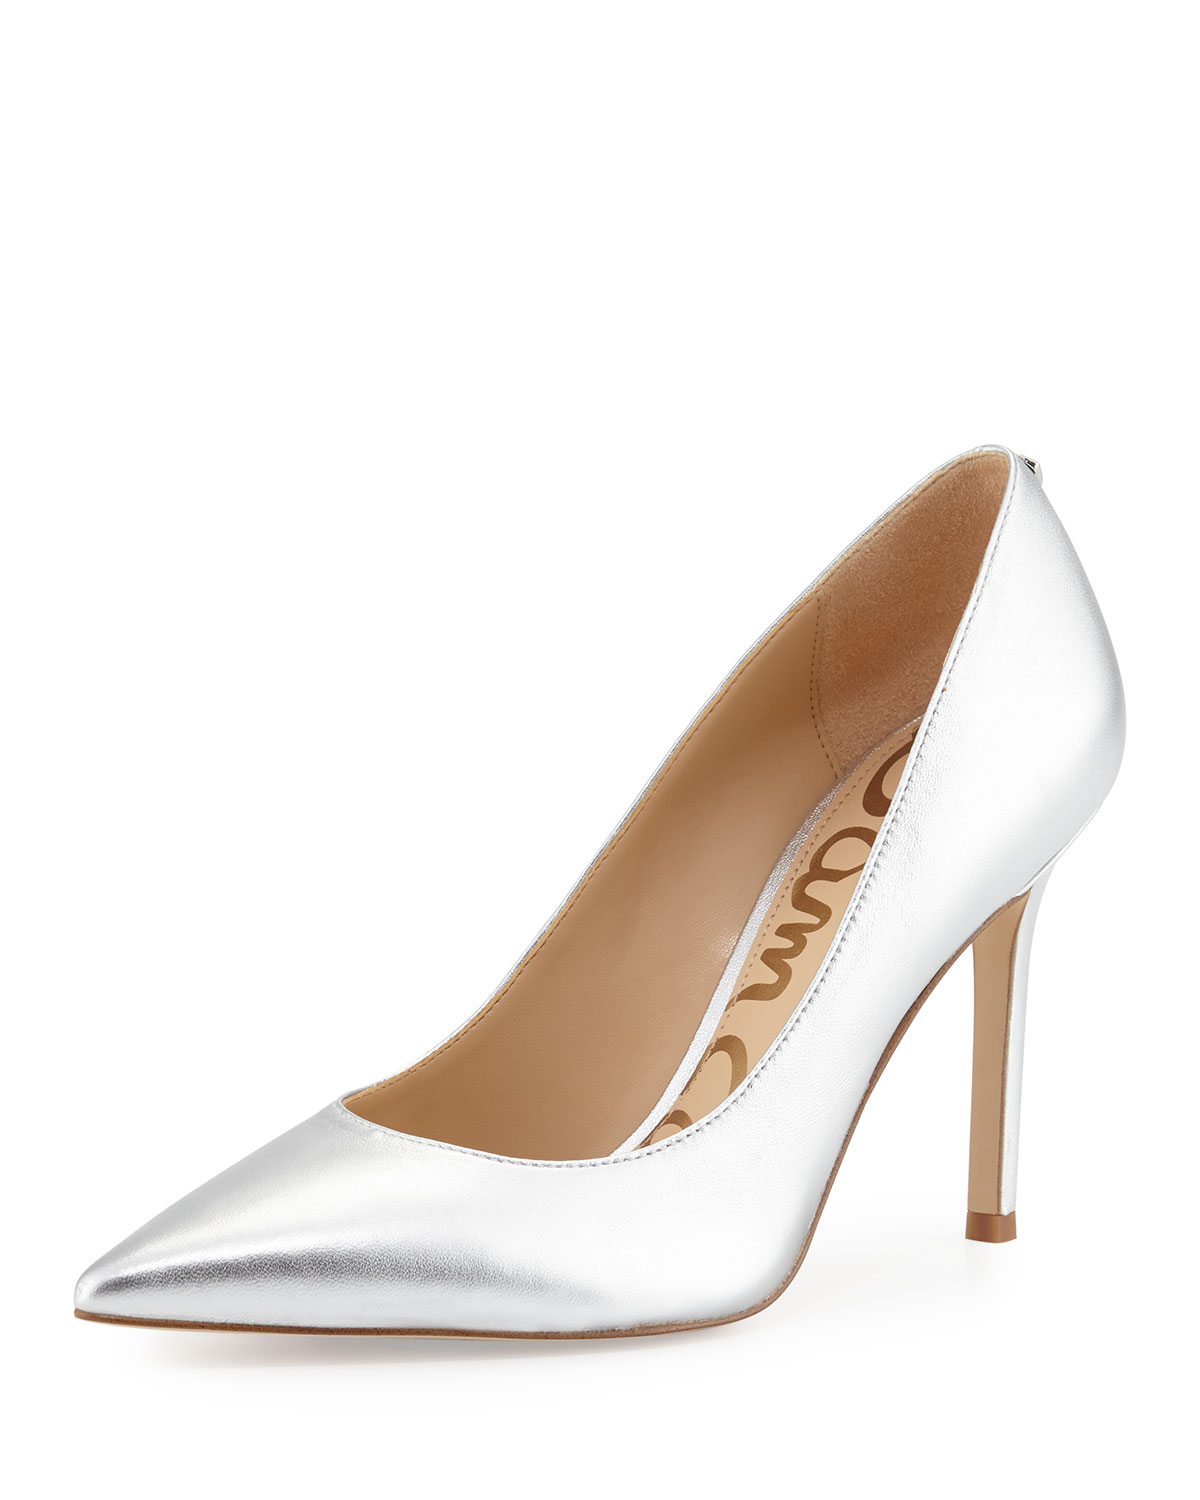 e95b00e143f9 Sam Edelman Hazel Pointed-Toe Metallic Pump